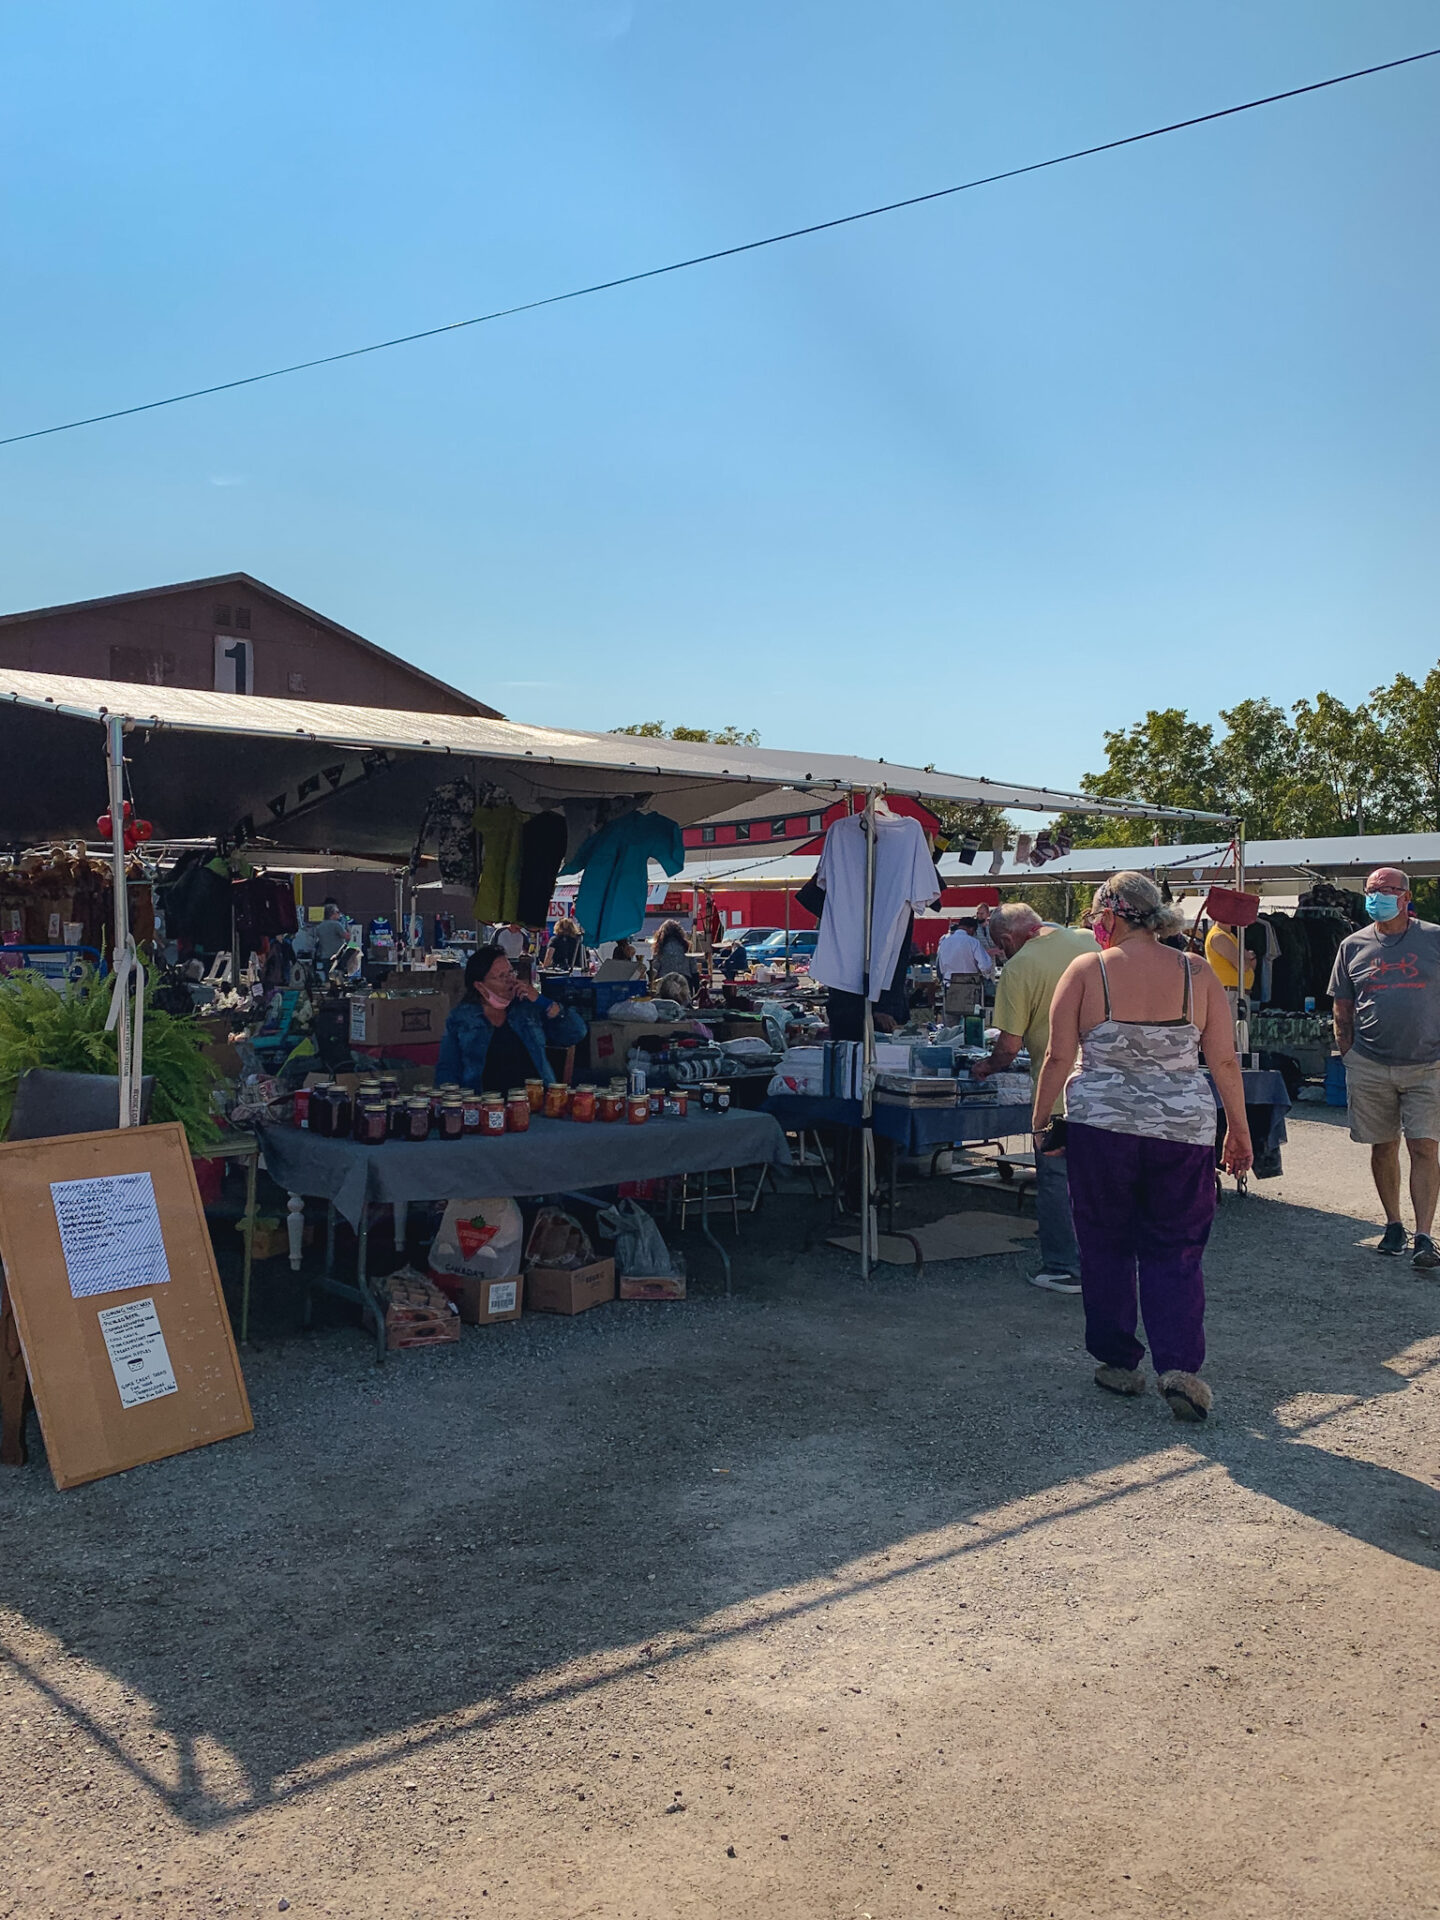 Vendors at Courtice Flea Market in Courtice, Ontario